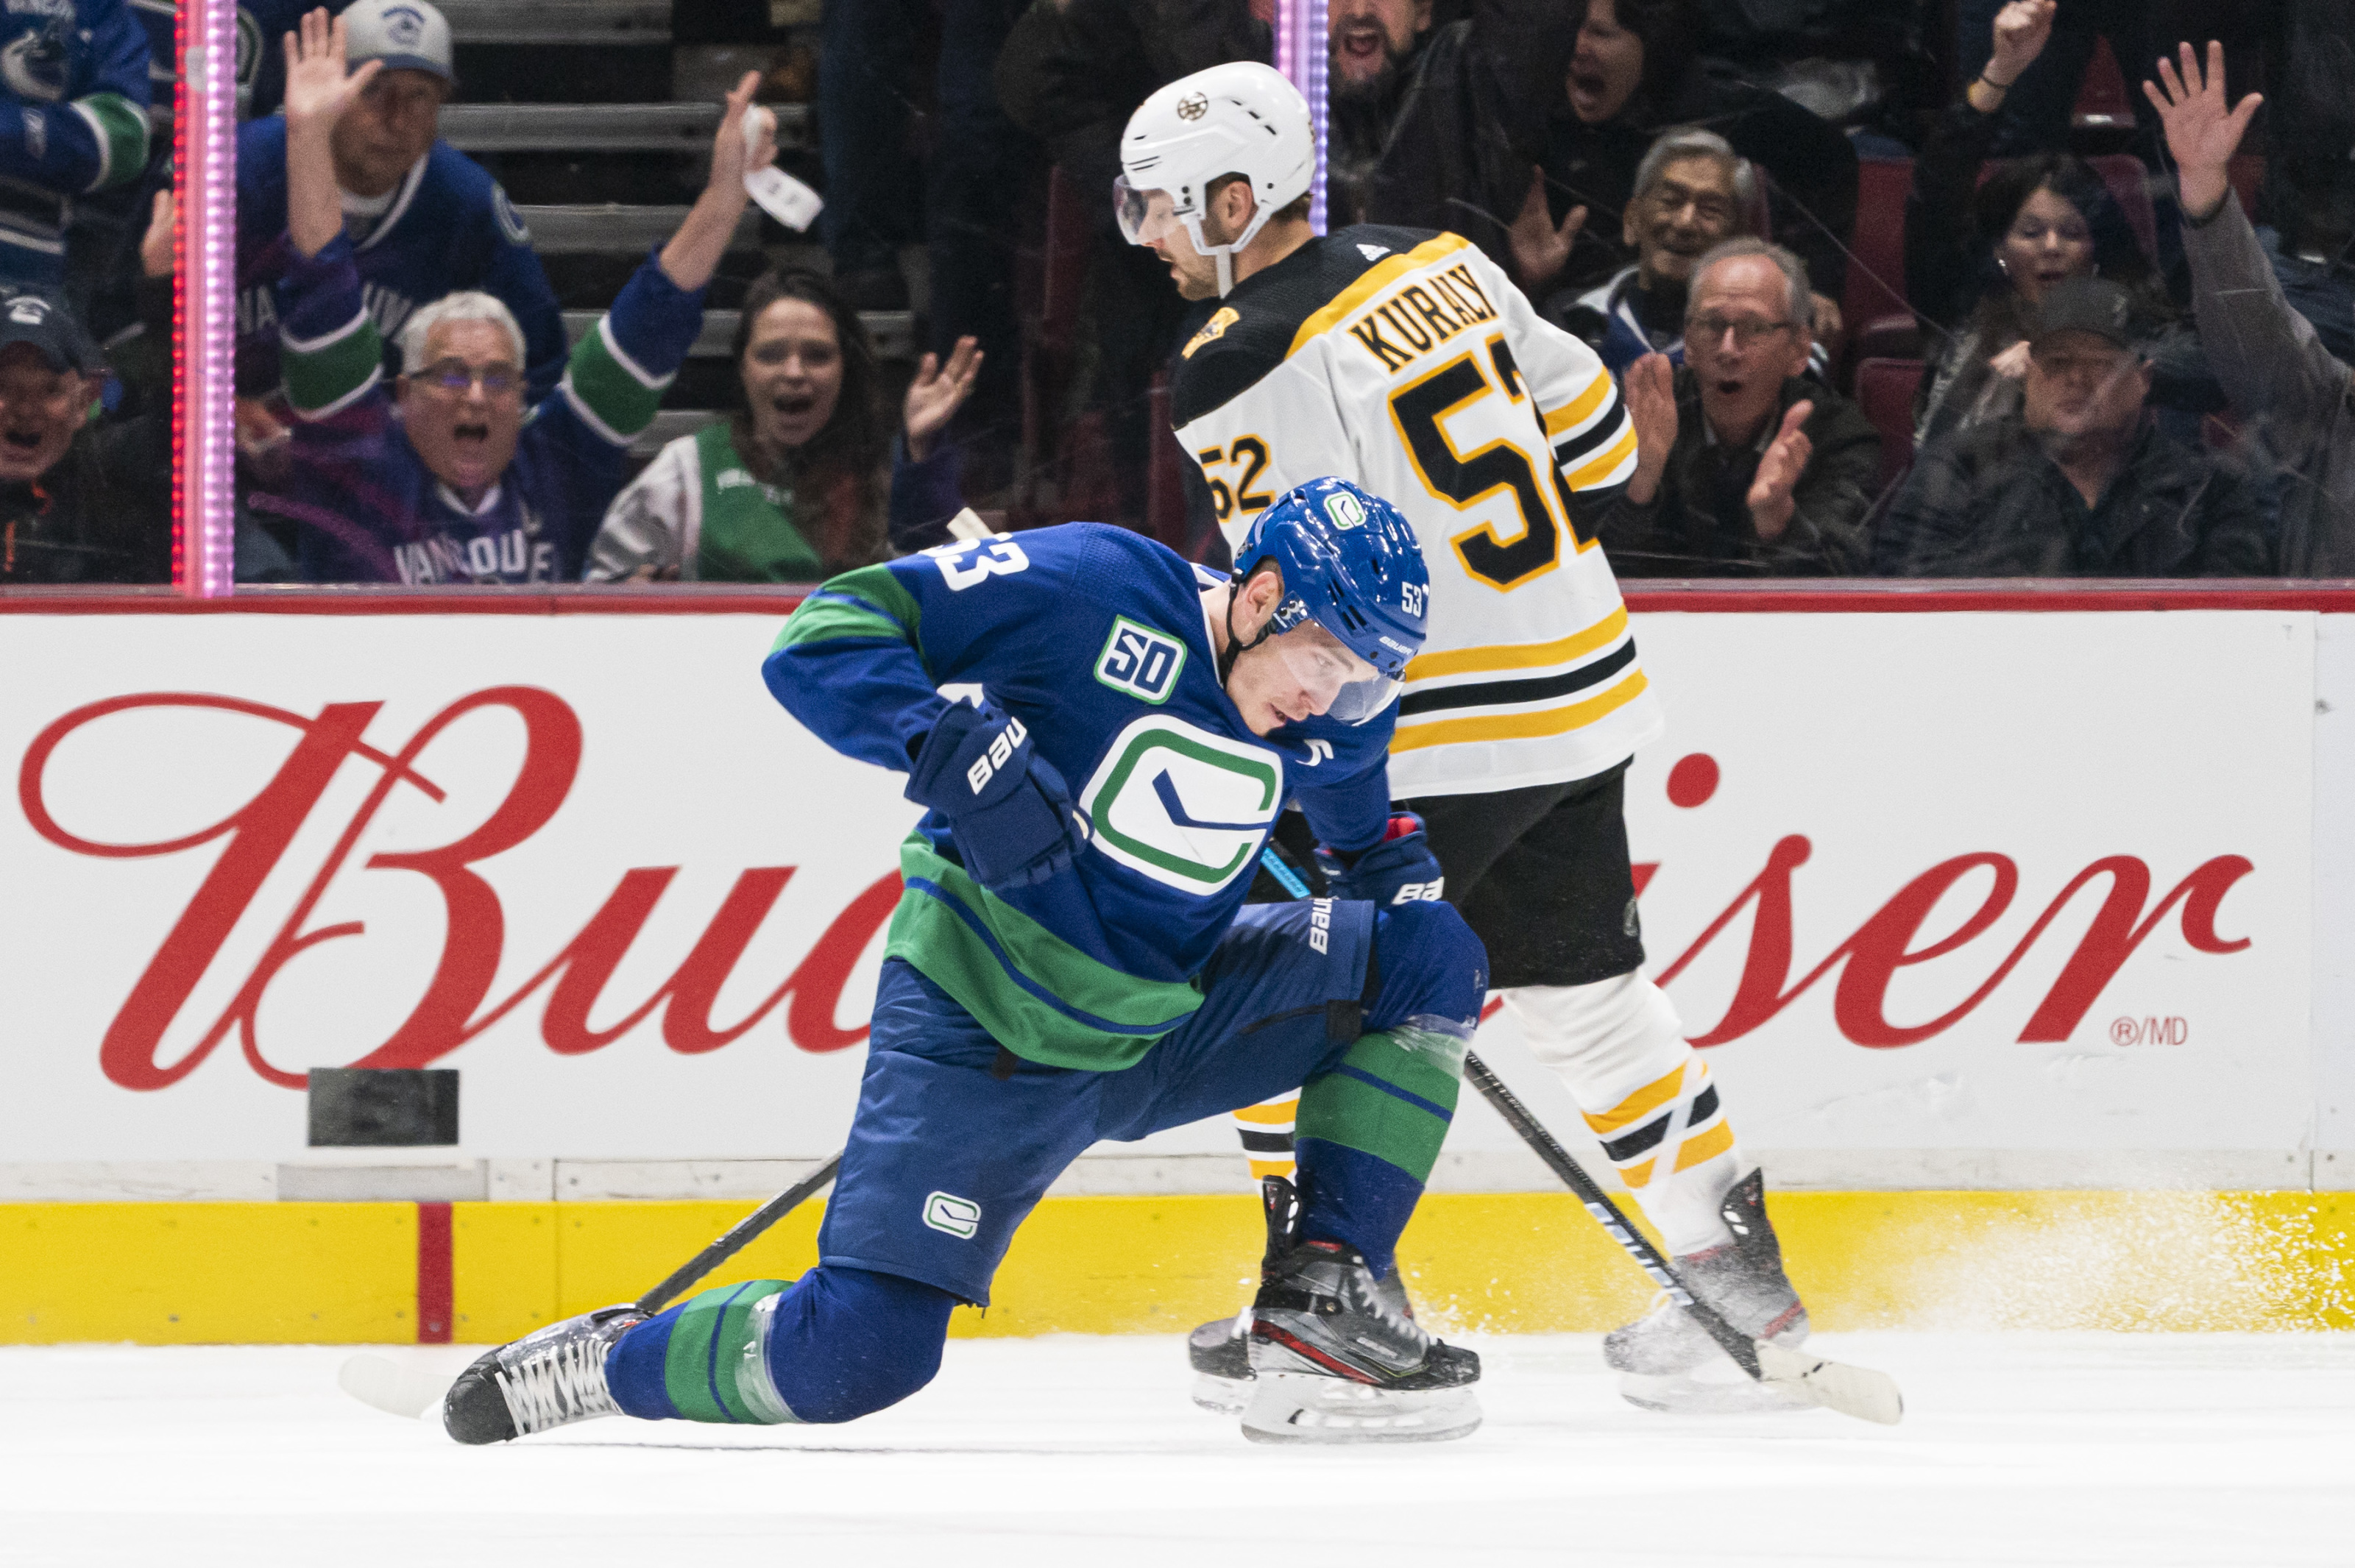 Boston Bruins: No room for excuses in 9-3 loss to the Vancouver Canucks